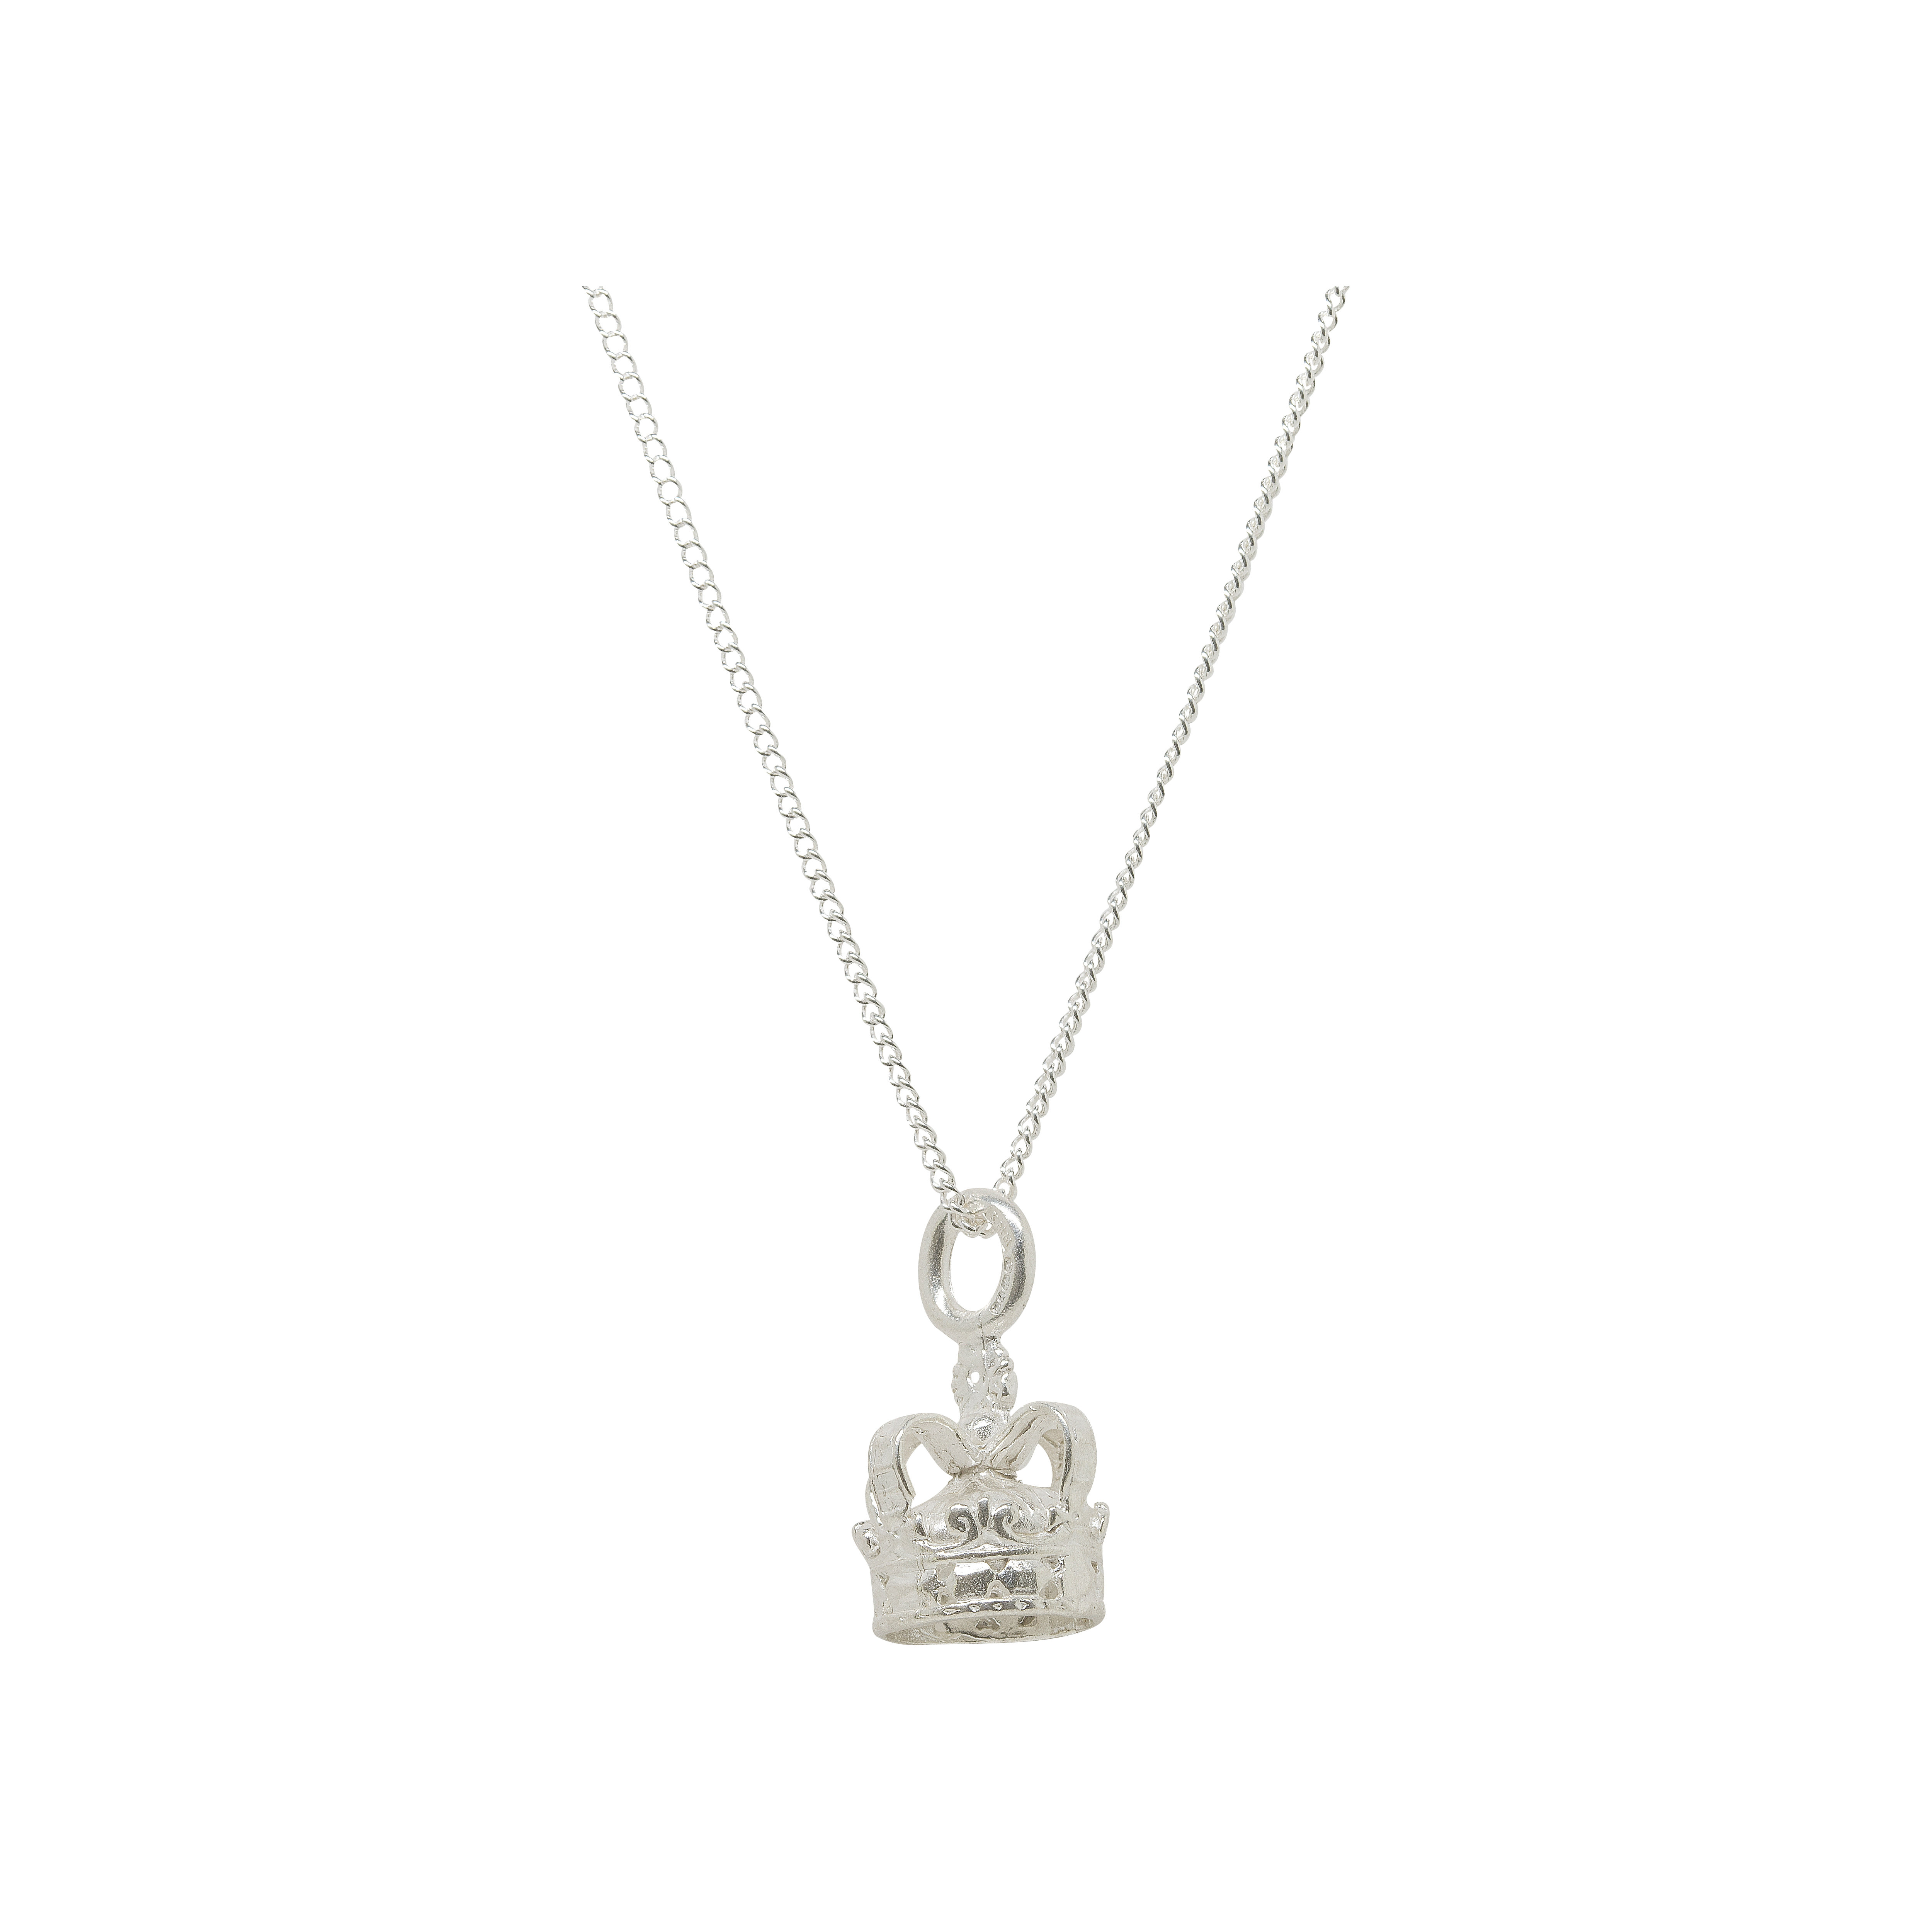 Katie Mullally Silver Crown Necklace 1N6Bm